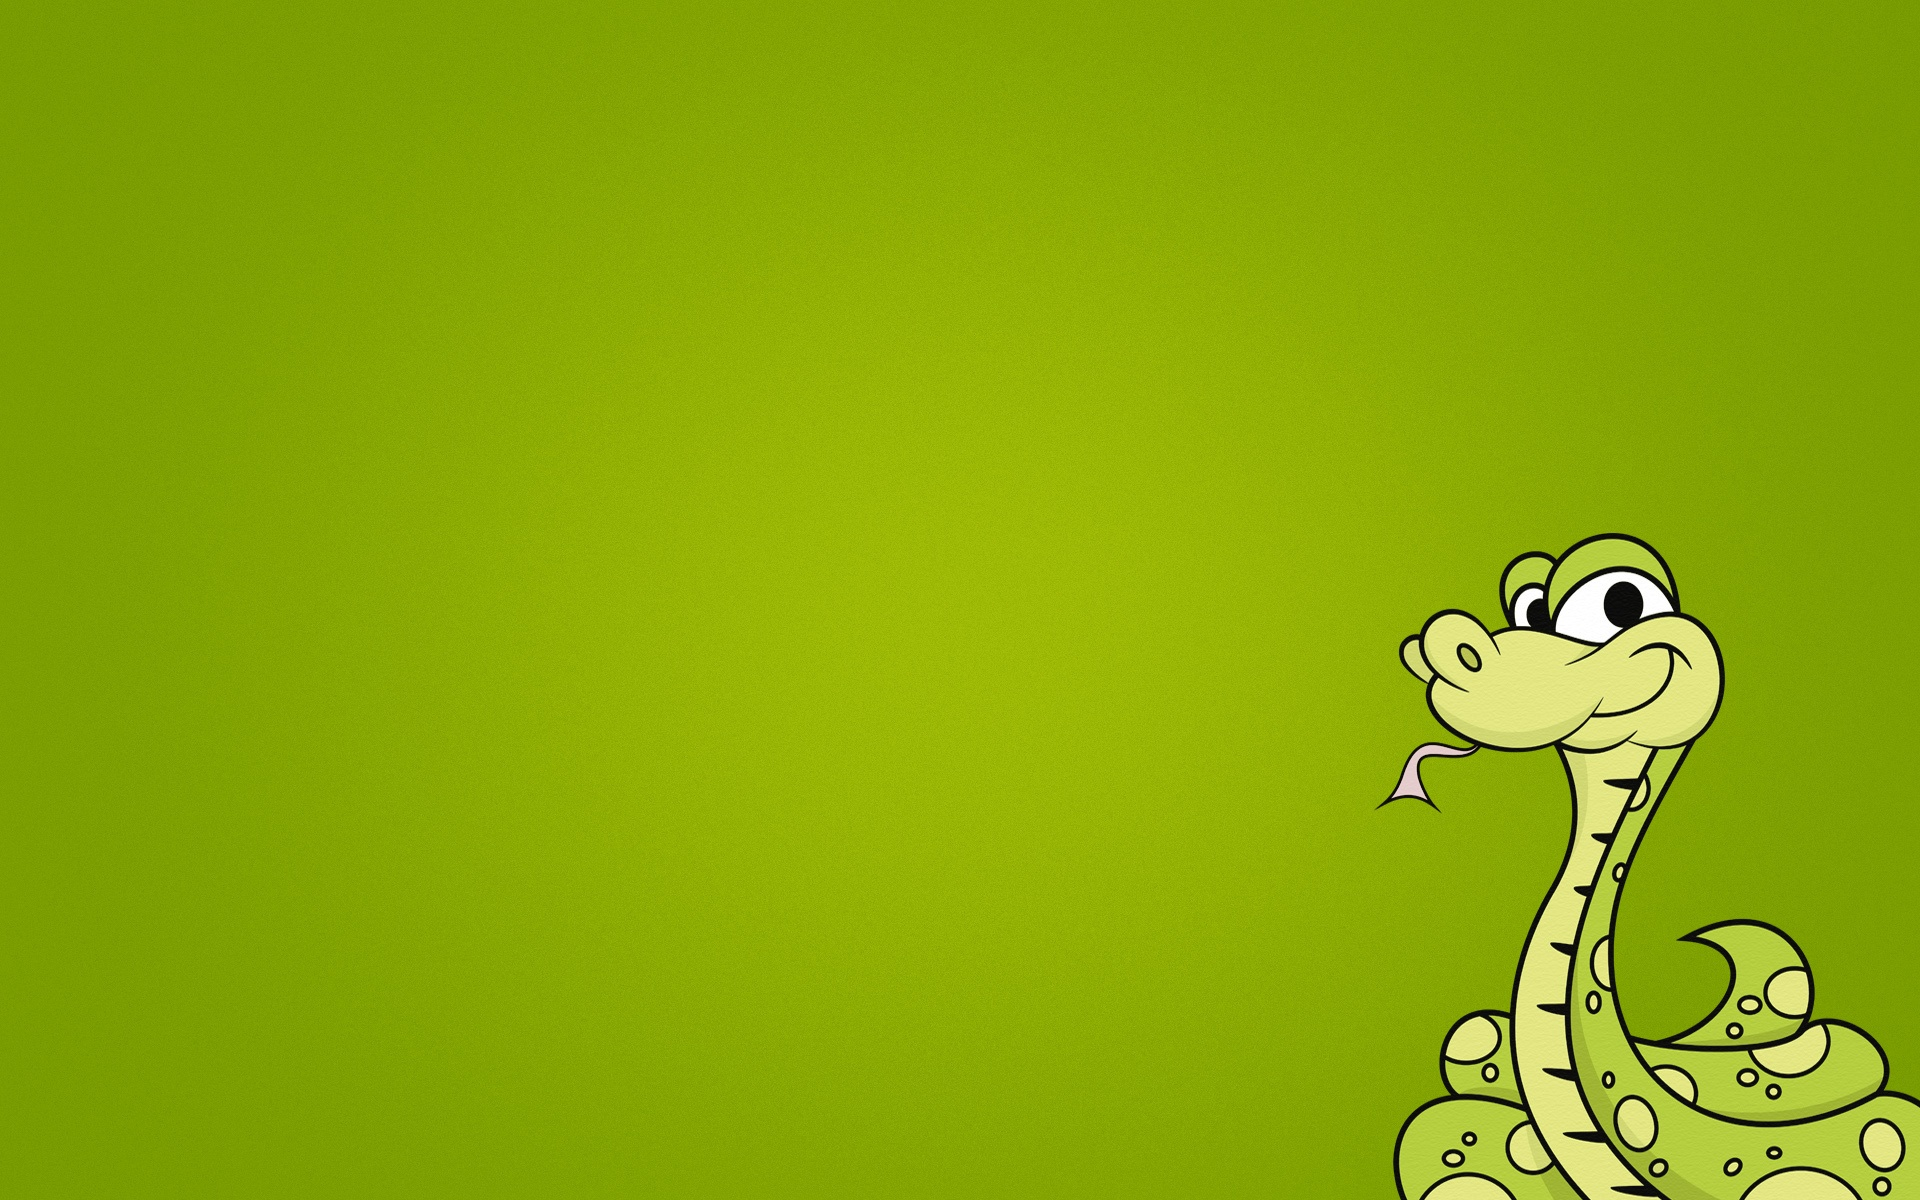 Cartoon green snake | 1920 x 1200 | download | close